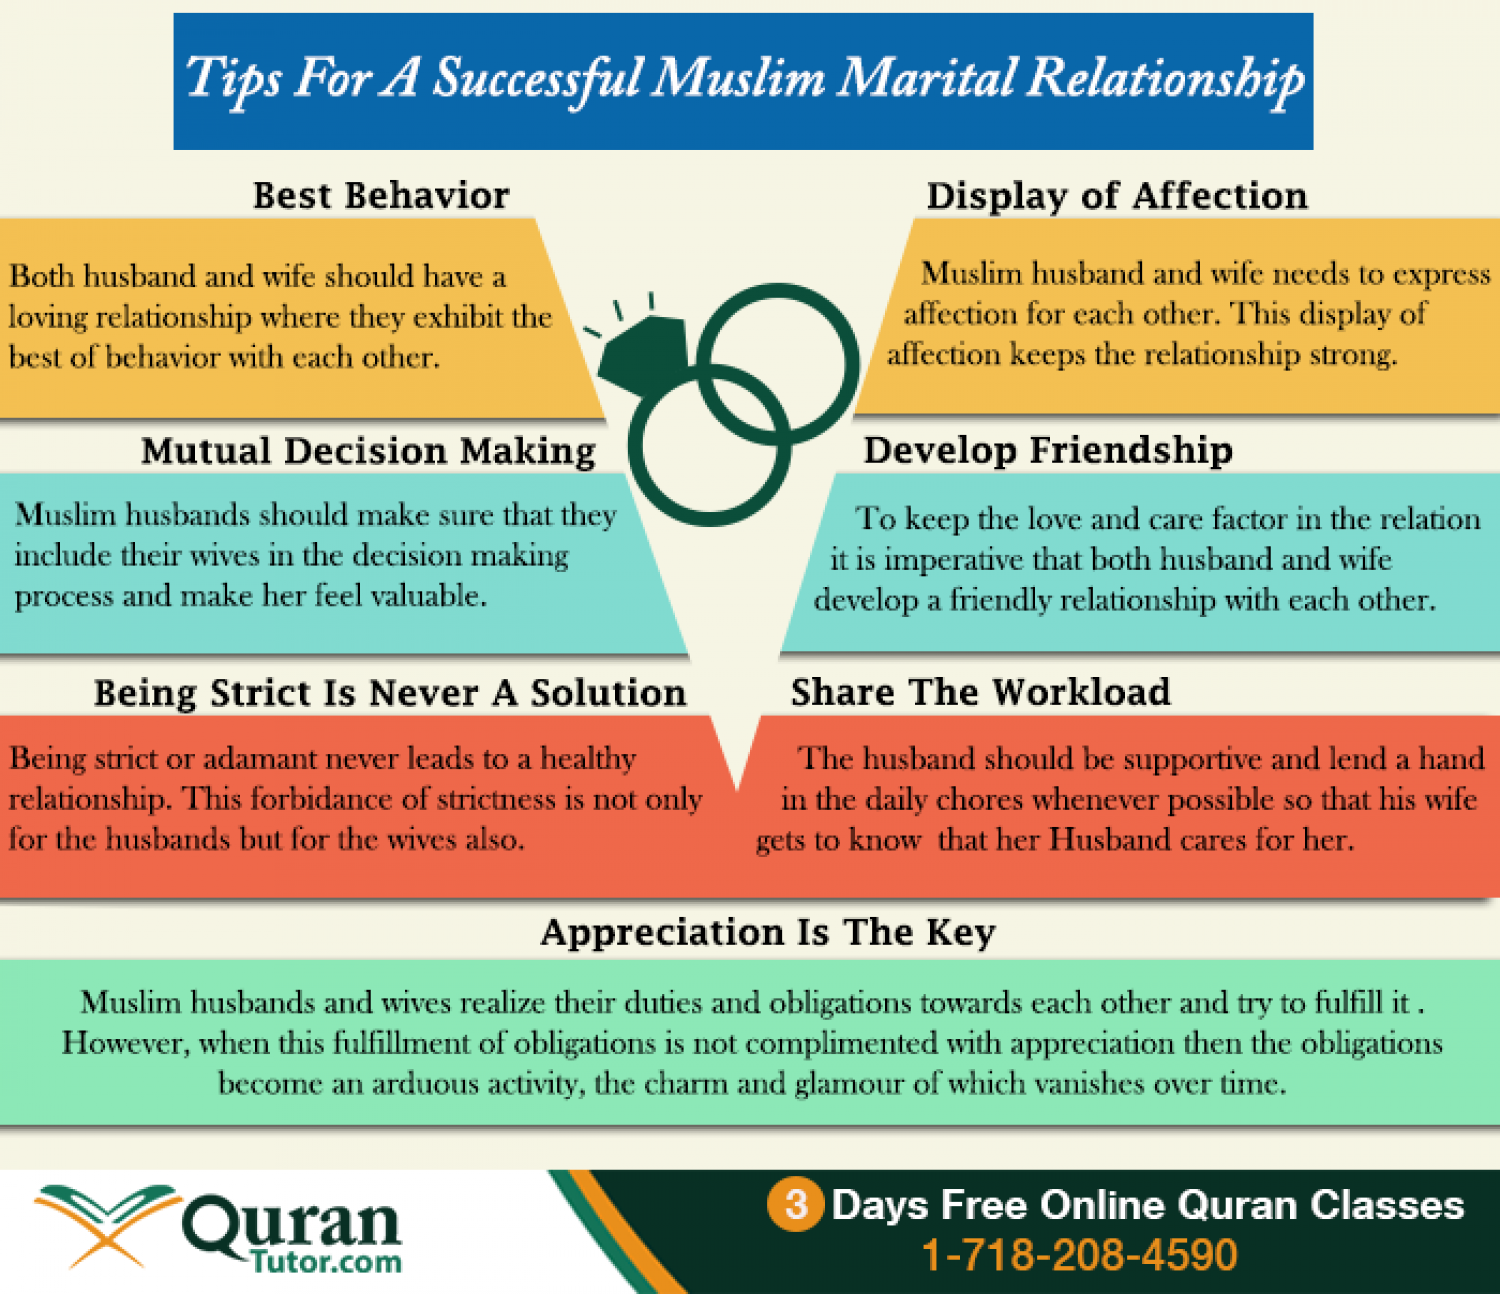 Tips for relationship success